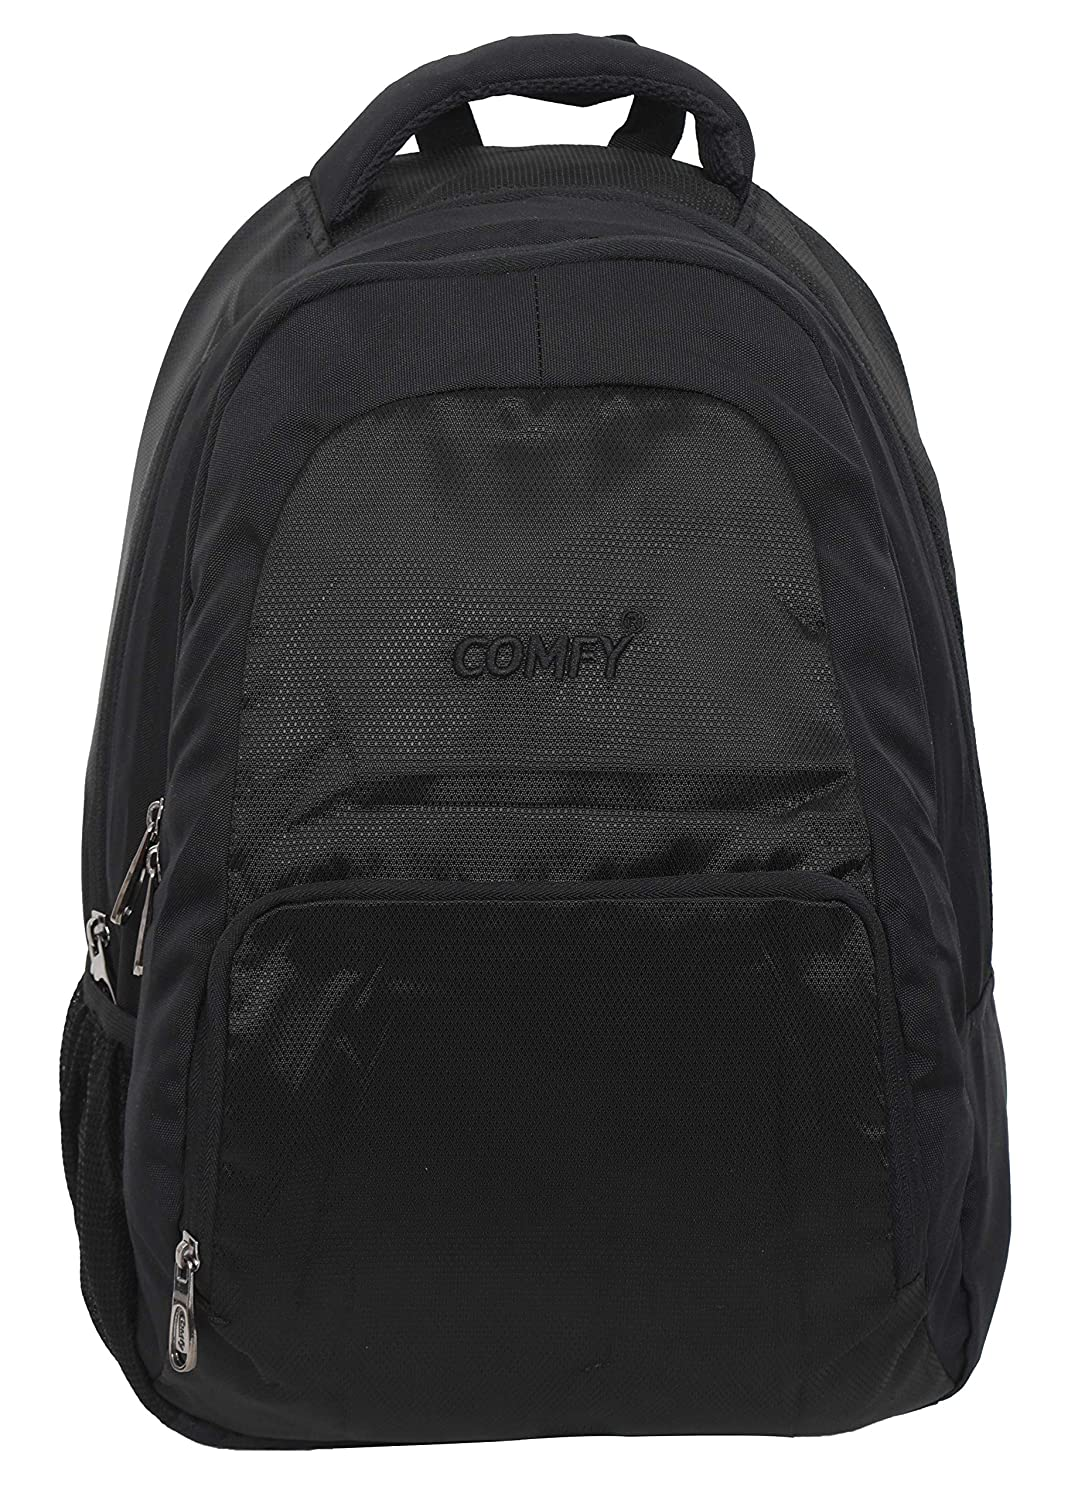 e3bd56c51f 19 Inch or 42 LTR Light Weight Multipurpose Backpack with Laptop  Compartment for Office   College (Black)  Amazon.in  Bags